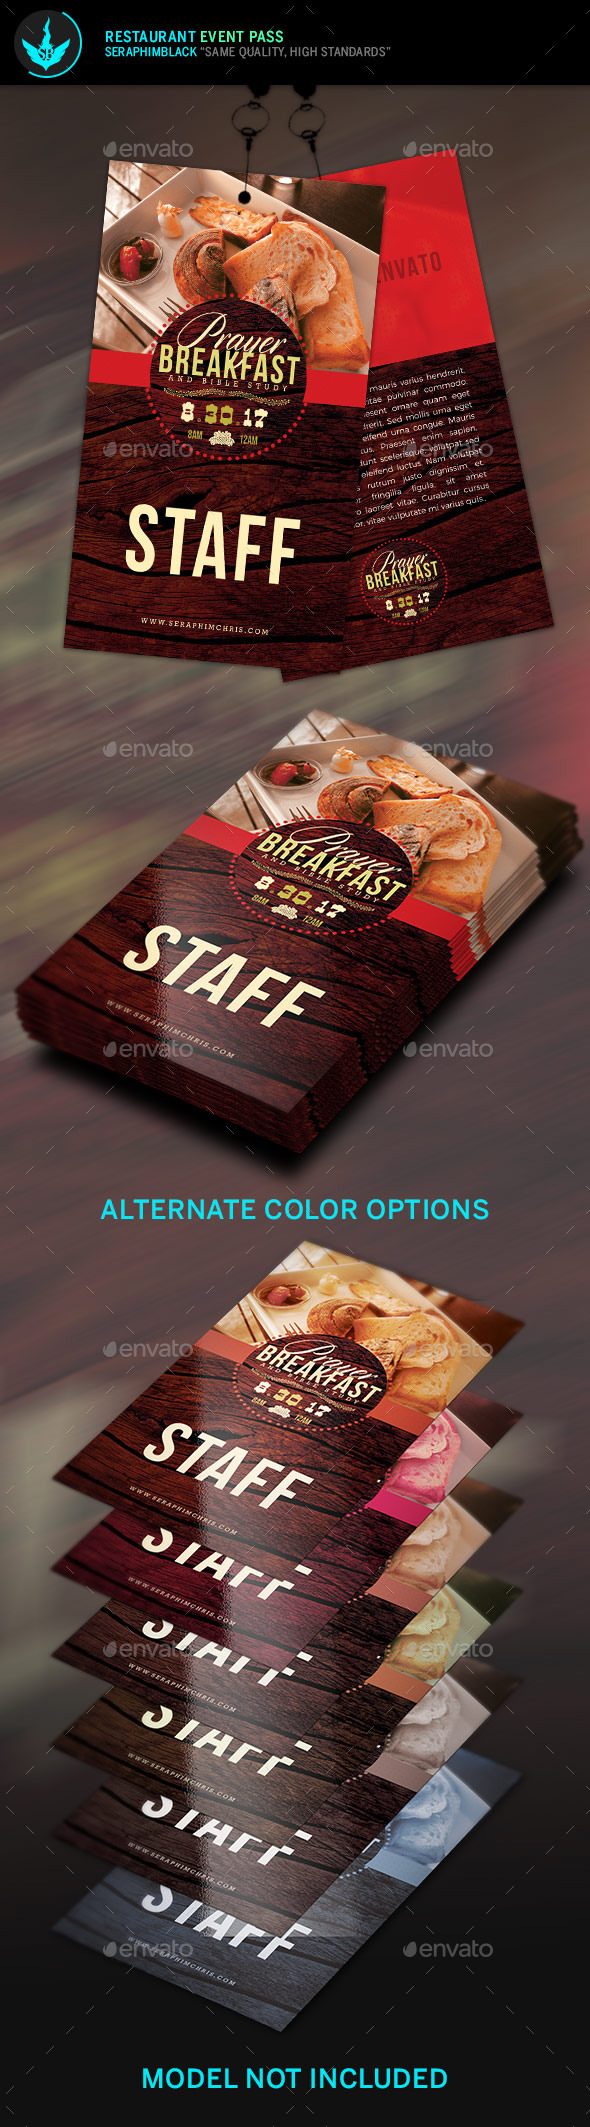 Restaurant Event Pass Template - Miscellaneous Print Templates